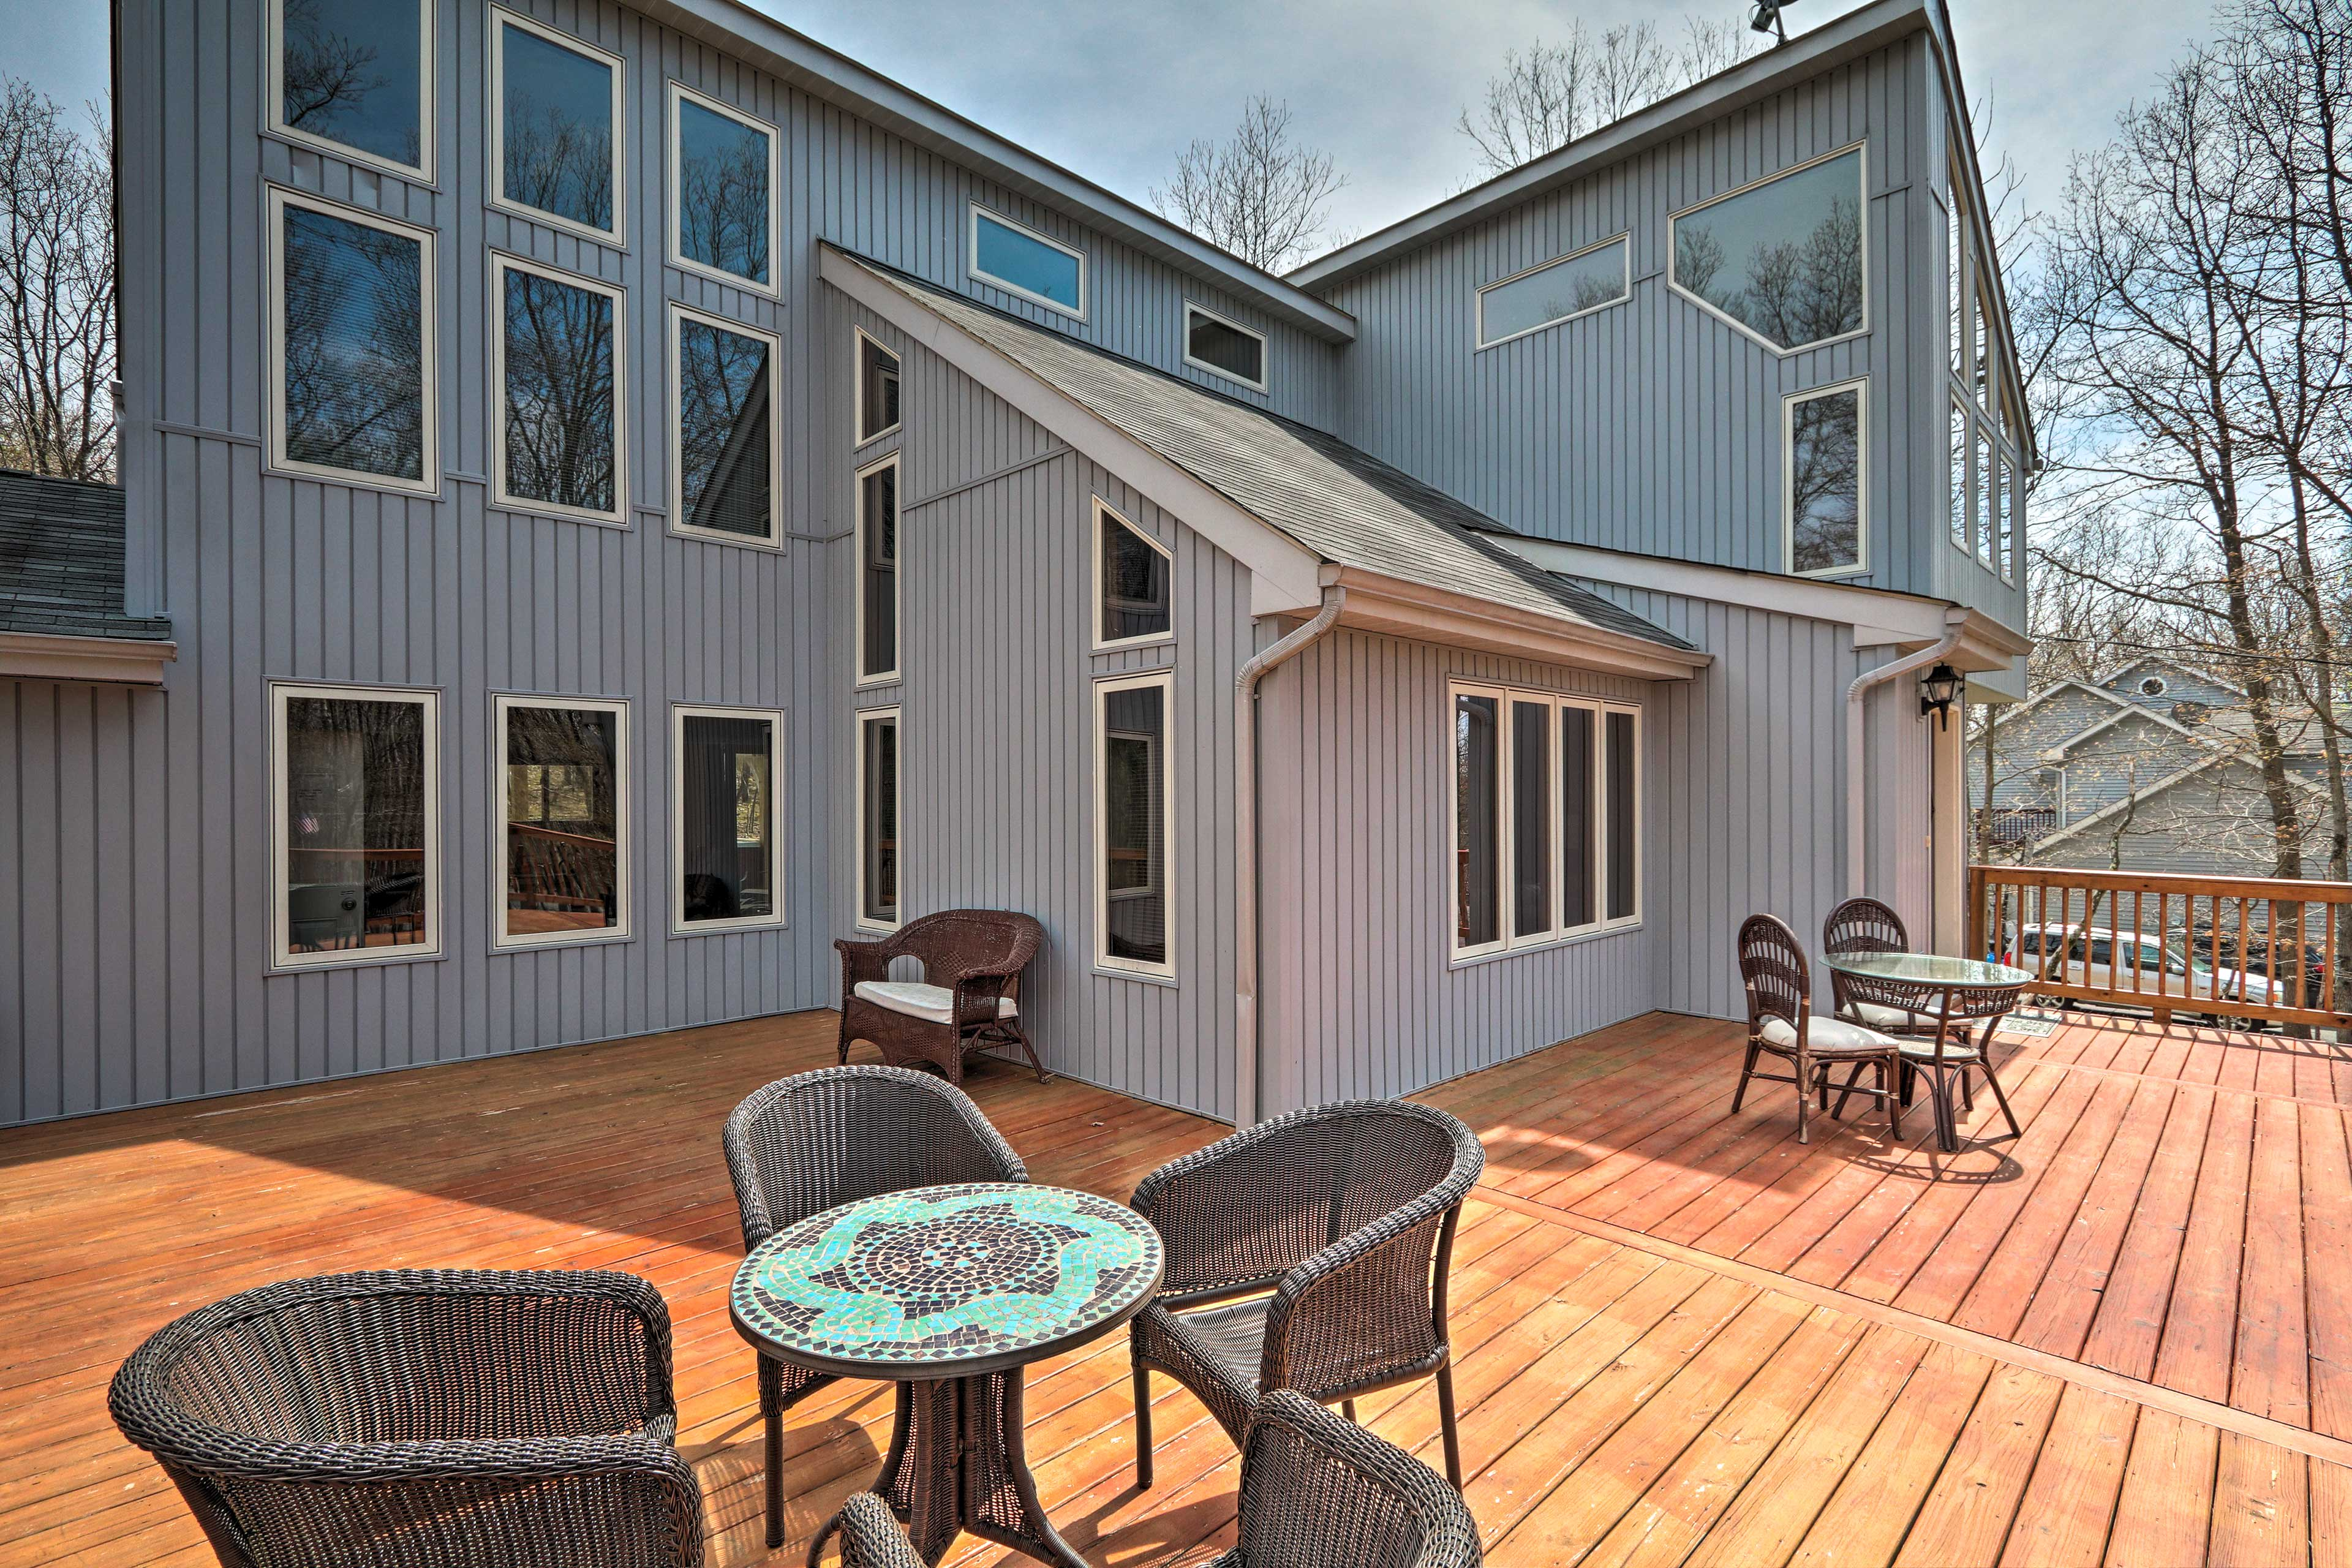 Private Deck   Outdoor Dining Space   Lighting   Steps Required